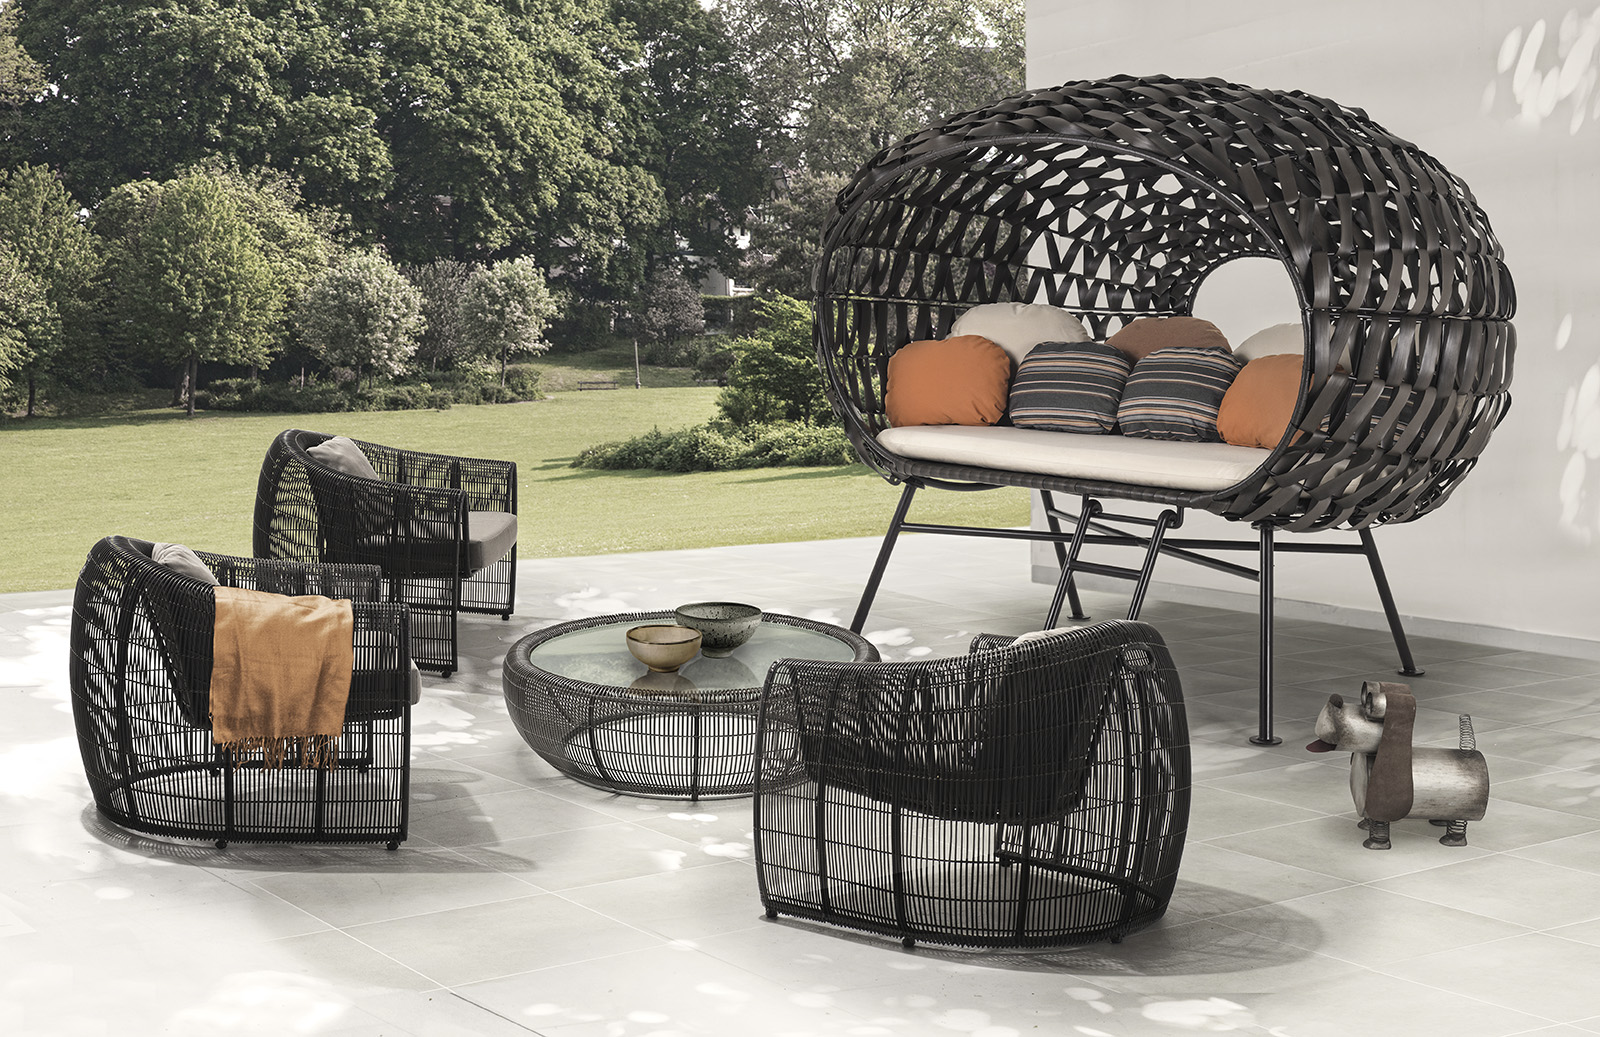 Outdoor Furniture Inventive 2014 New Style Outdoor Synthetic Rattan Furniture Factory Direct Selling Price Sun Loungers